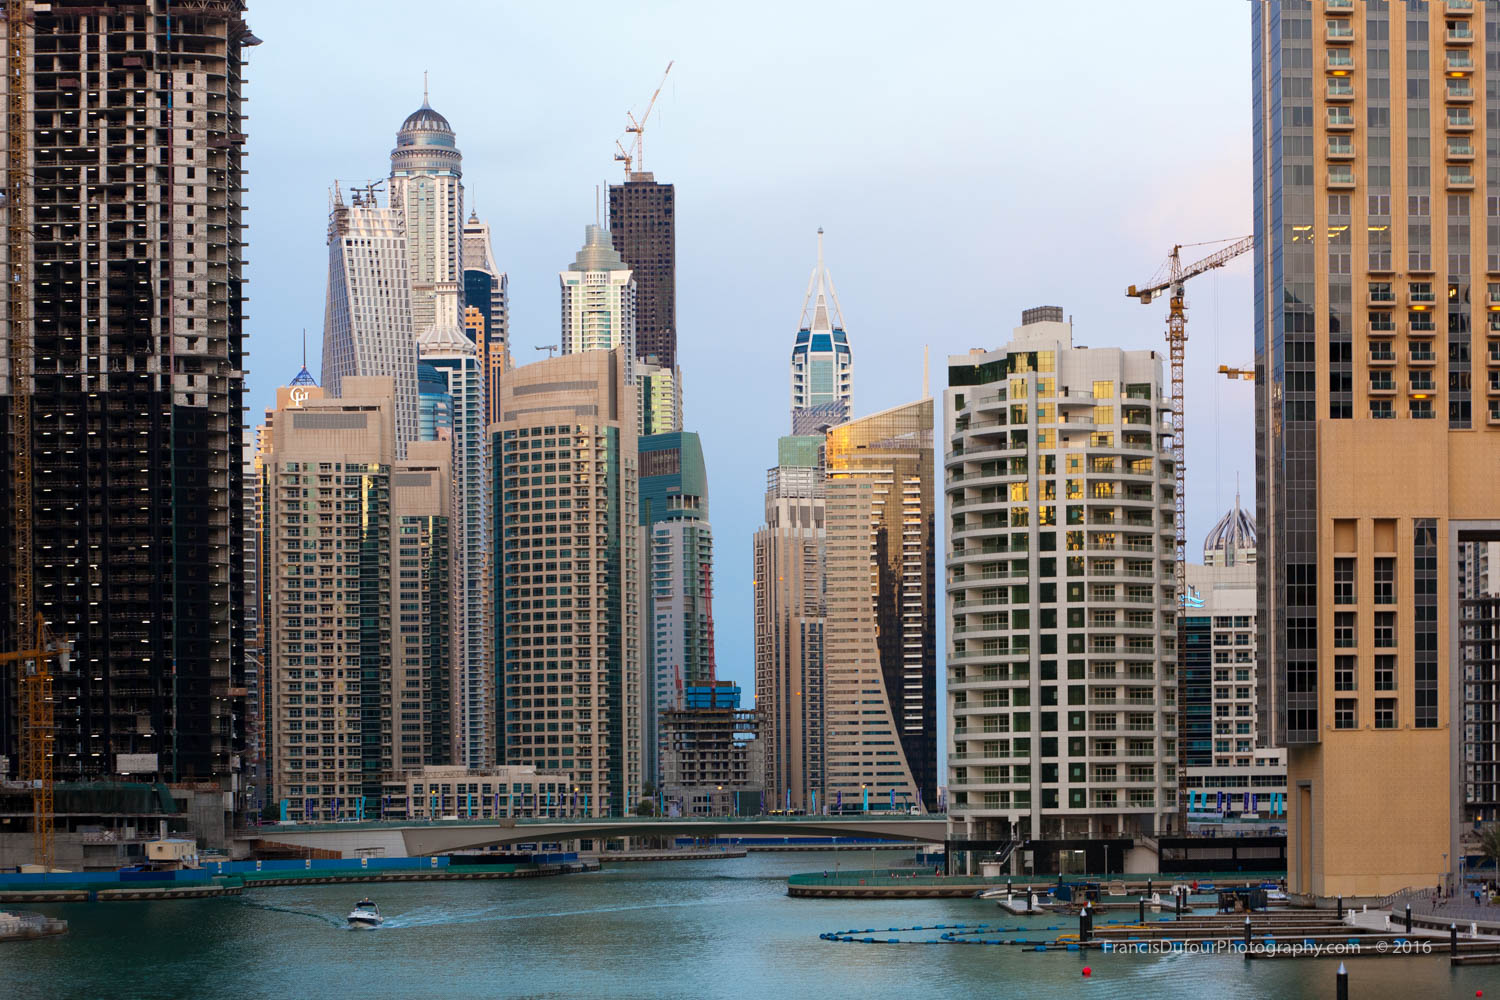 FD-IMG-8943-uae-dubai-marina-walk-towers